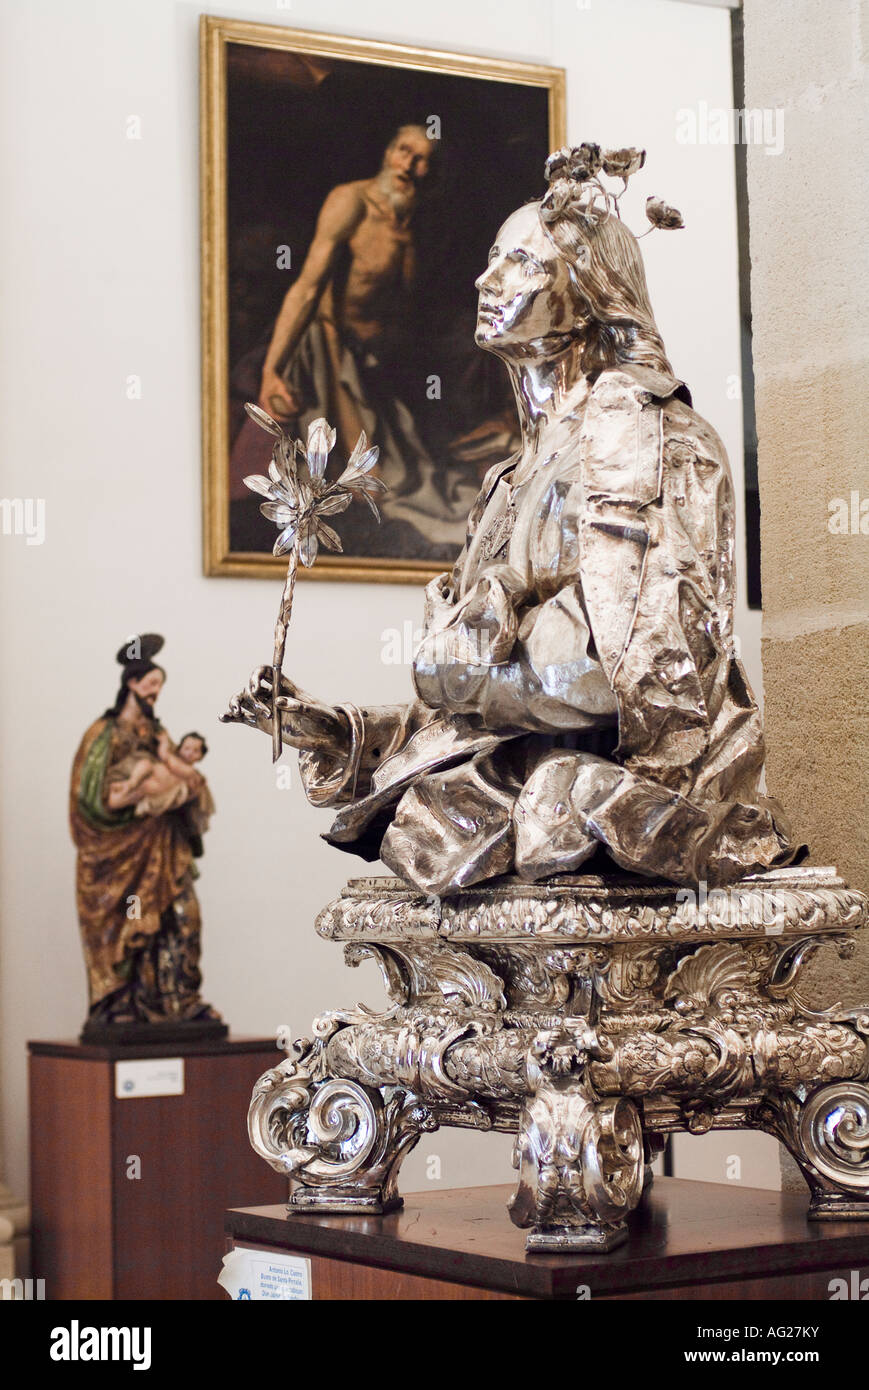 Statue in Interior Museum of Cathedral of Seville in Andalusia Spain Stock Photo